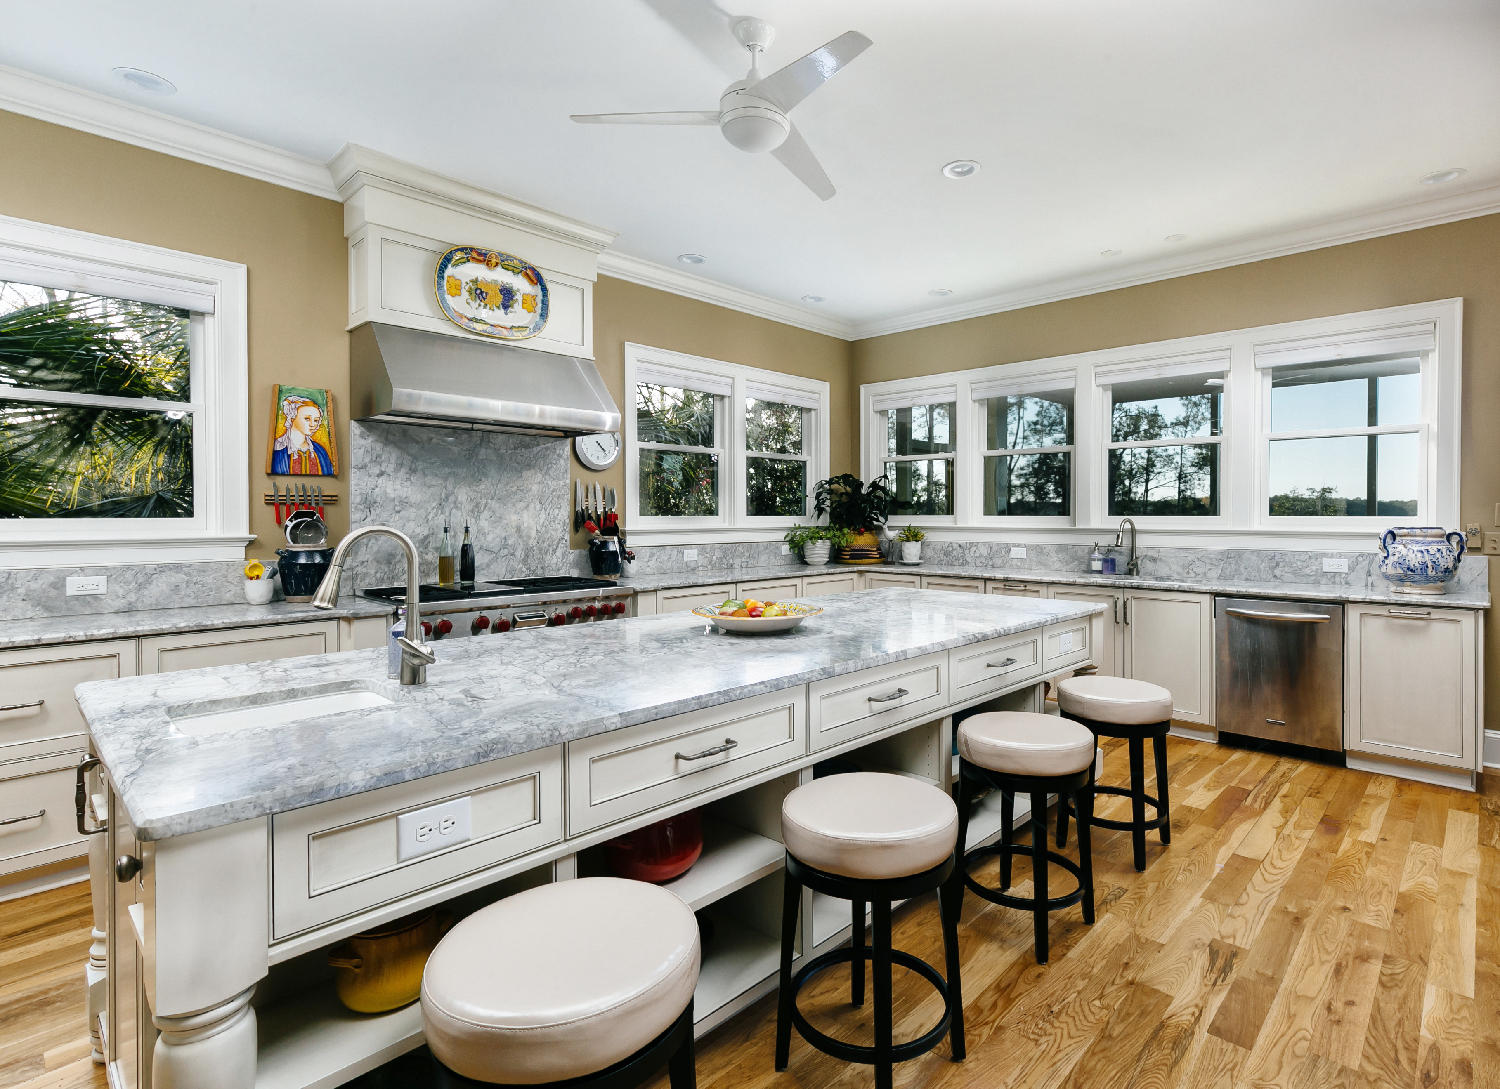 Rivertowne On The Wando Homes For Sale - 2212 Hartfords Bluff, Mount Pleasant, SC - 26